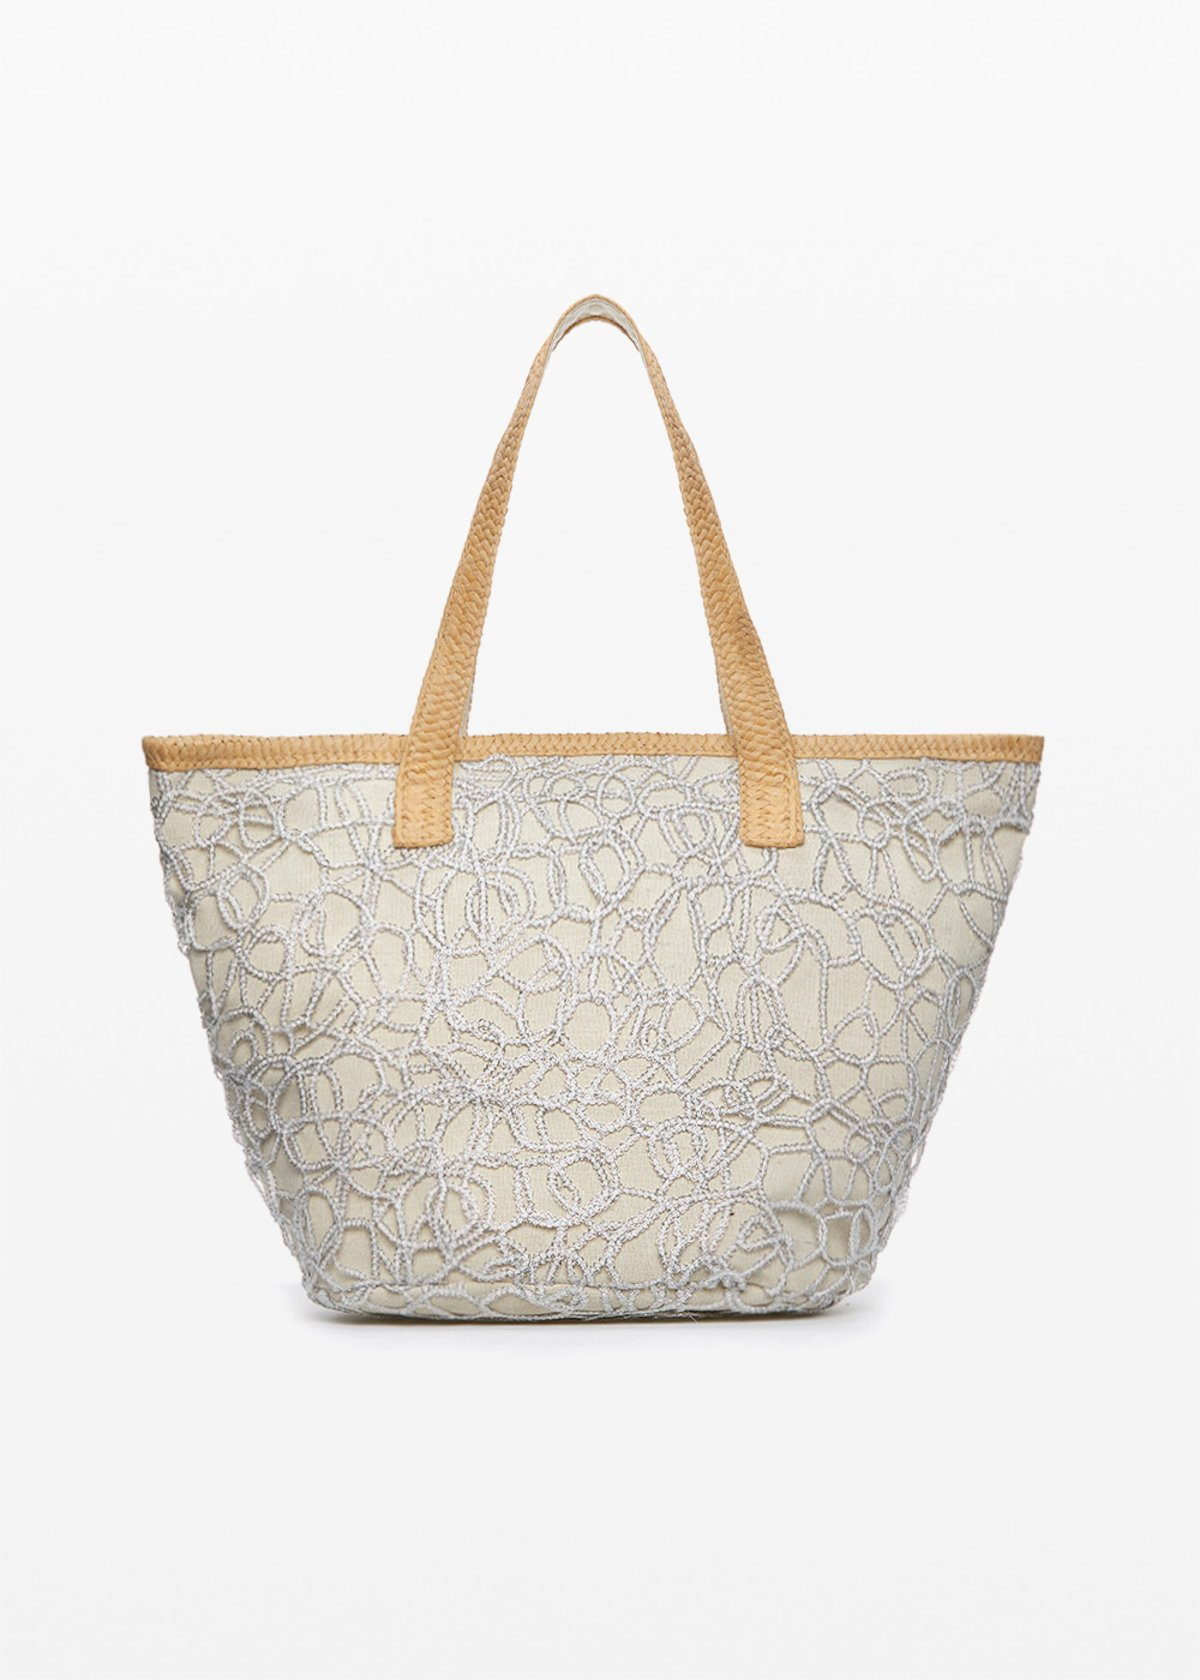 Mamdy bag of straw and fabric with lurex basket - Silver - Woman